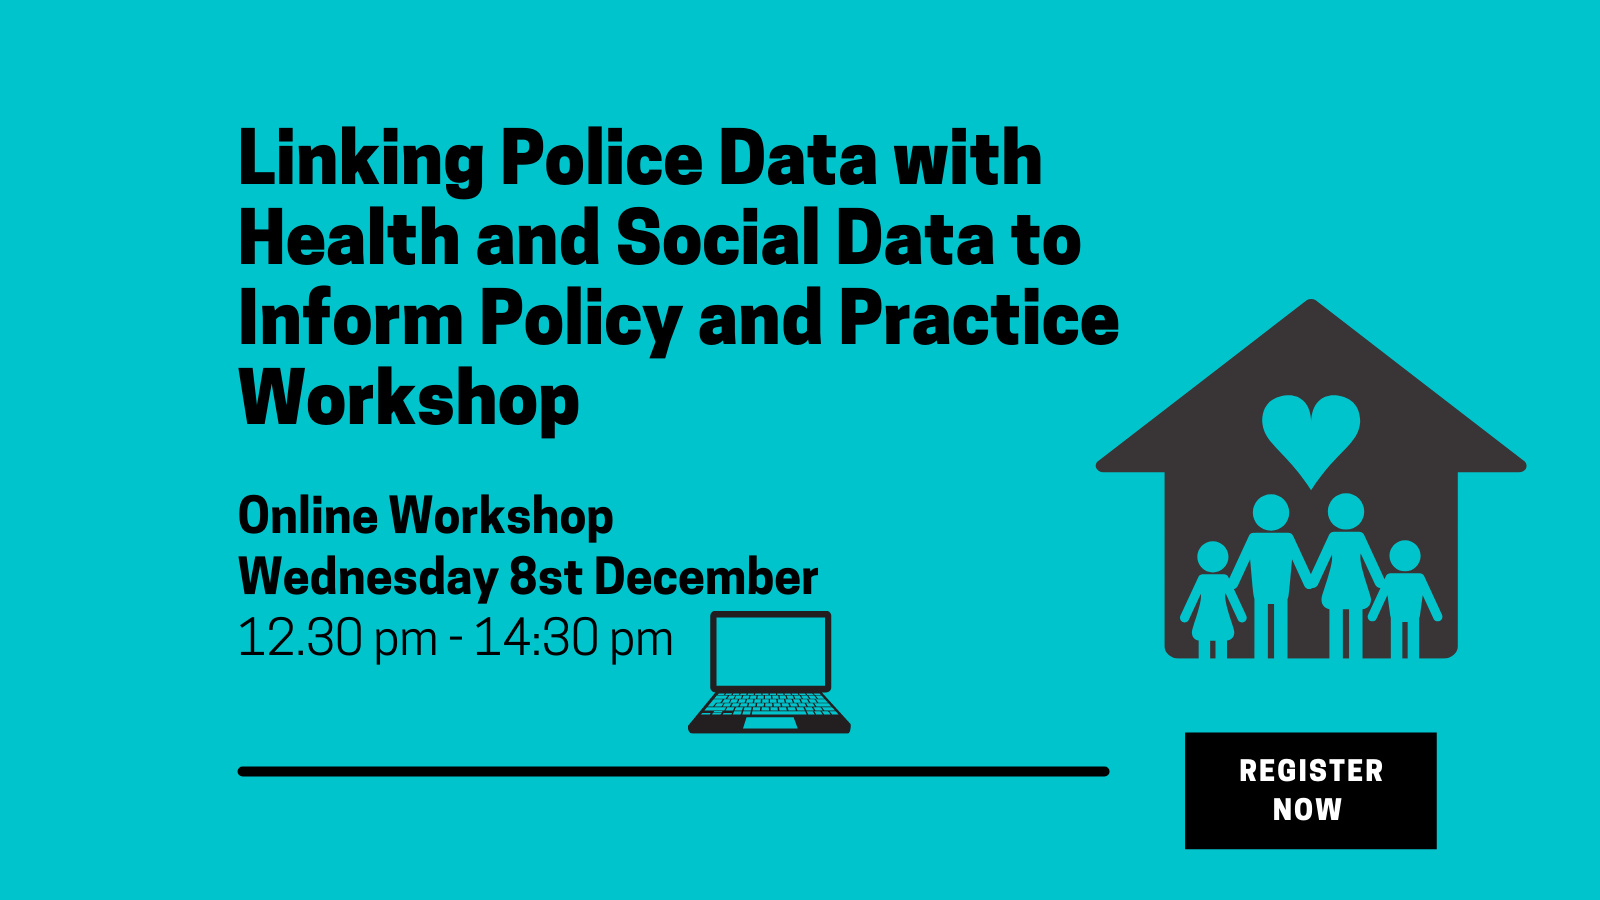 Linking Police Data with Health and Social Data to Inform Policy/Practice – Online Workshop